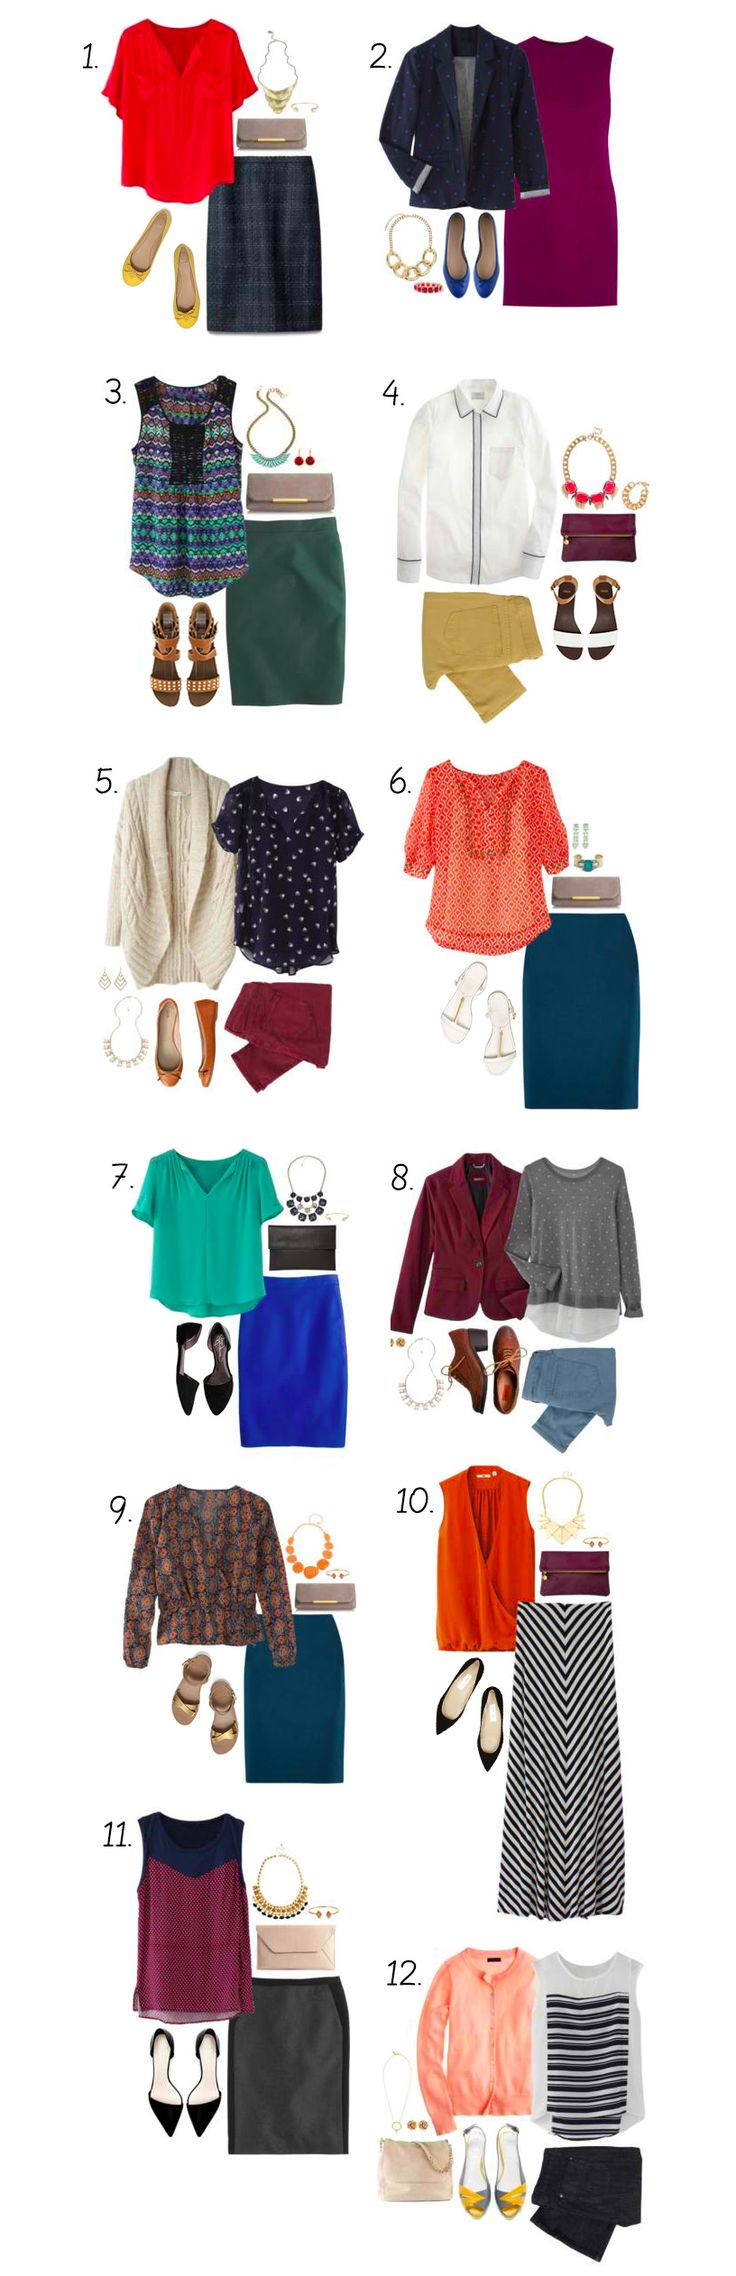 Big fan of all looks, except #10 (would prefer a shorter skirt). I am short, and maxi skirts don't do much for me.